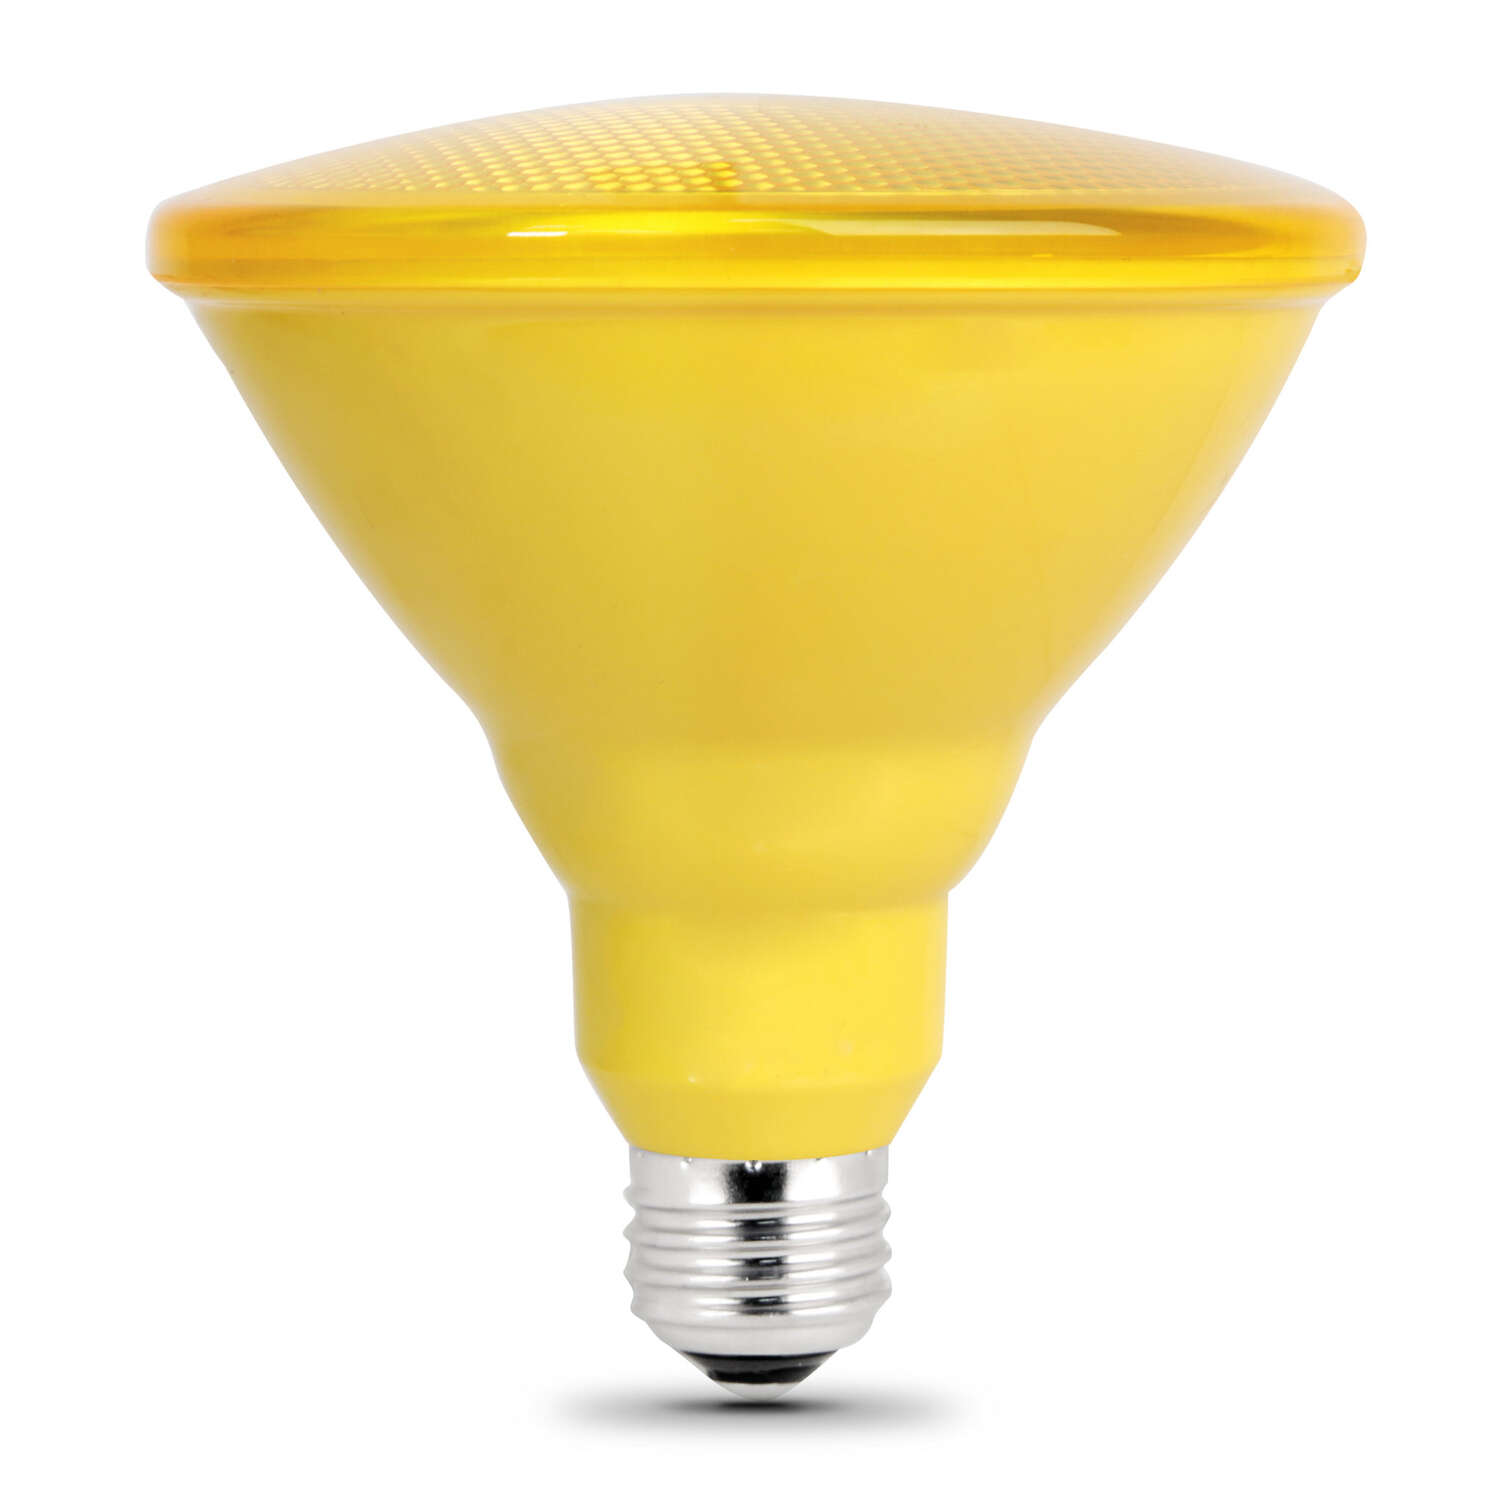 FEIT Electric  6.5 watts PAR38  LED Bulb  1000 lumens Yellow  90 Watt Equivalence Floodlight